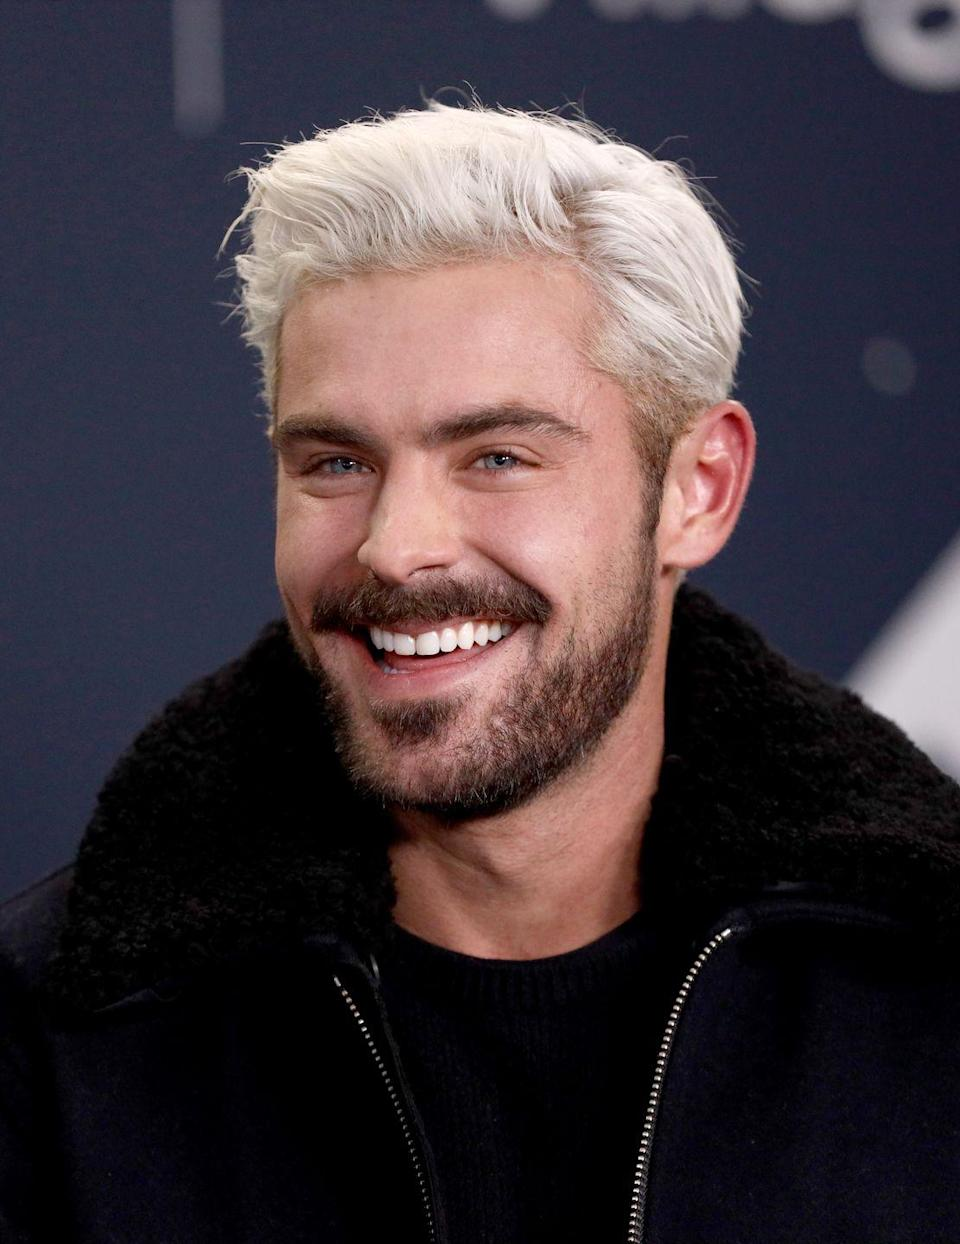 <p>A moment of silence for platinum blonde Zac Efron. You will be missed dearly. </p>